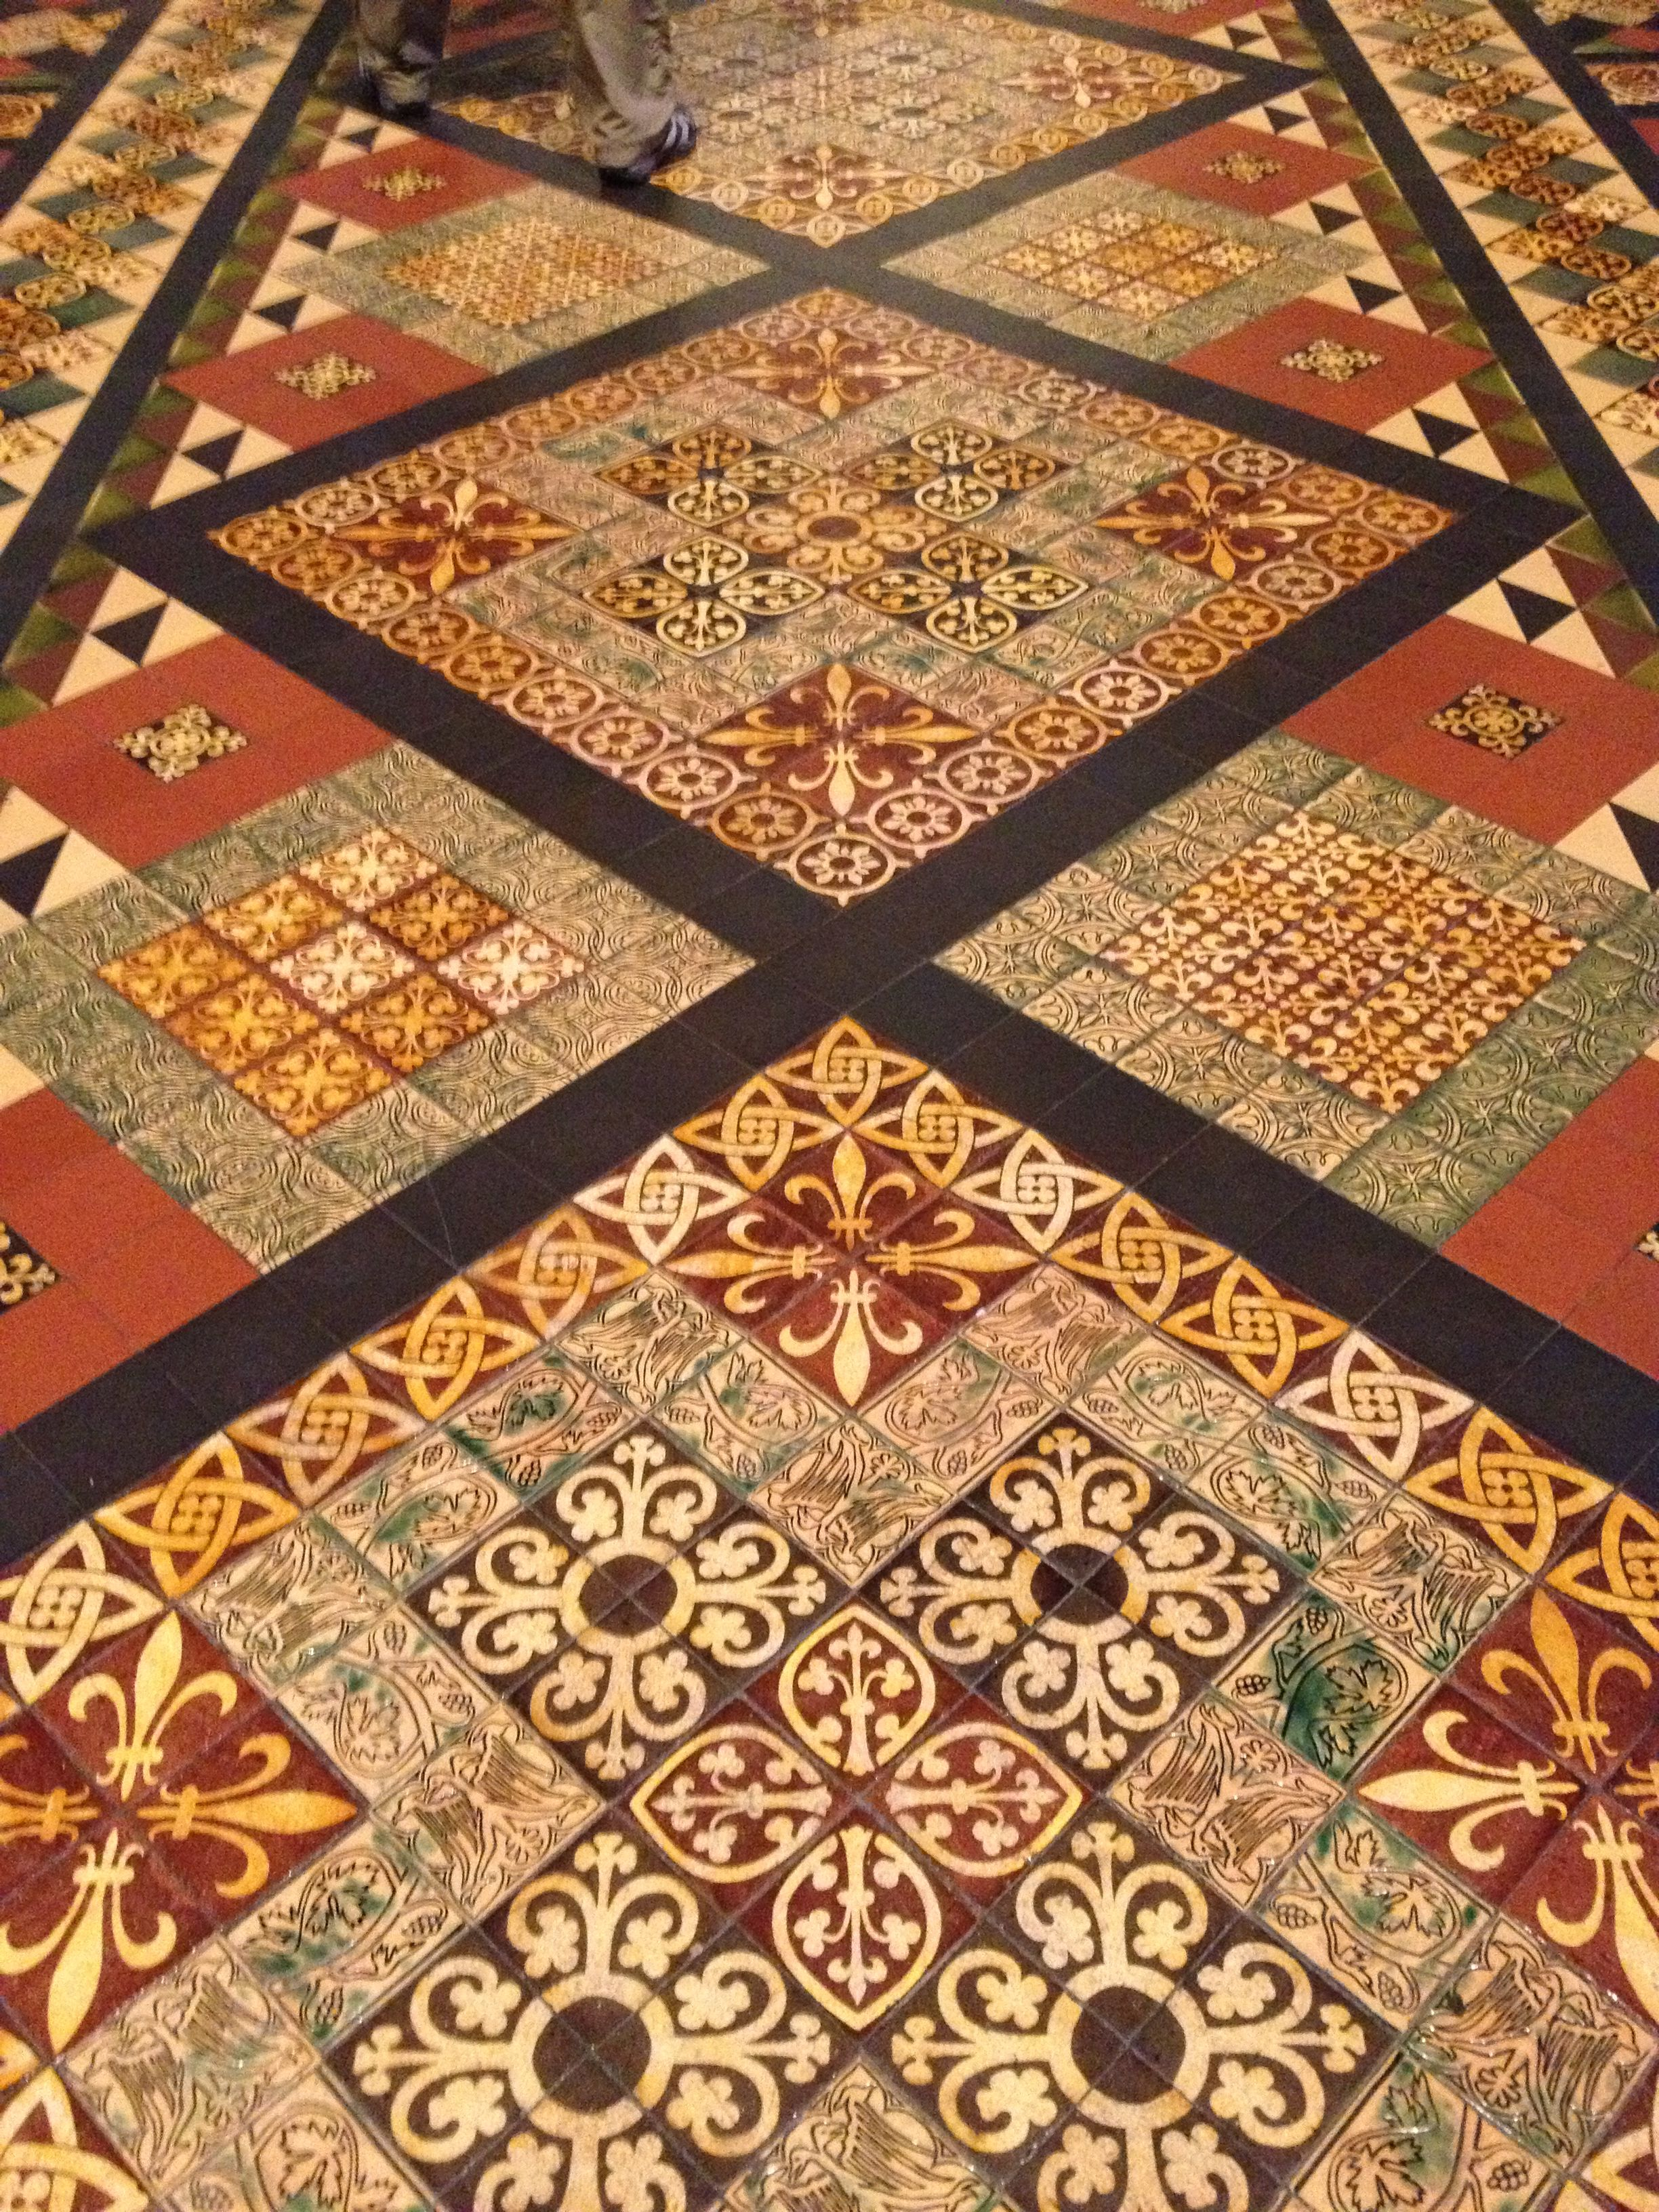 Medieval tile designs google search medieval resorces medieval tile designs google search dailygadgetfo Image collections